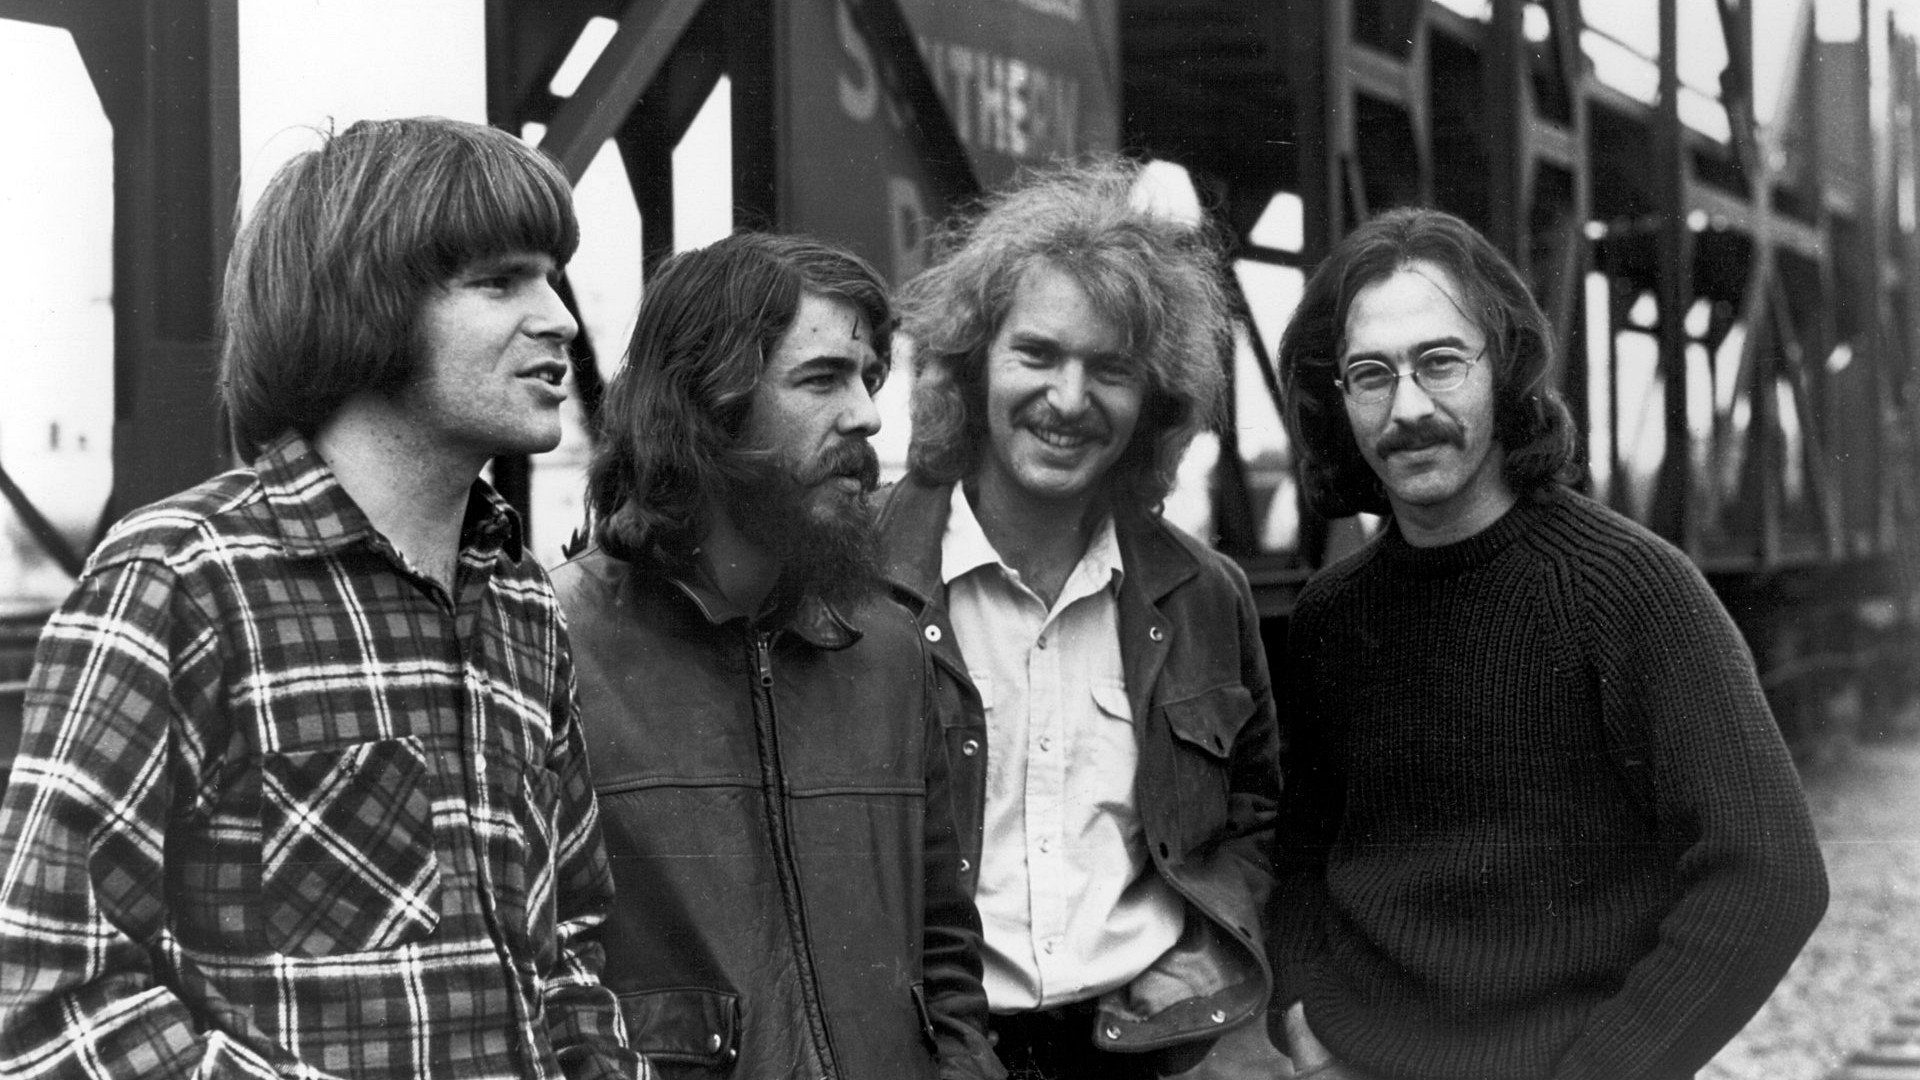 Creedence Clearwater Revival wallpapers HD for desktop backgrounds 1920x1080